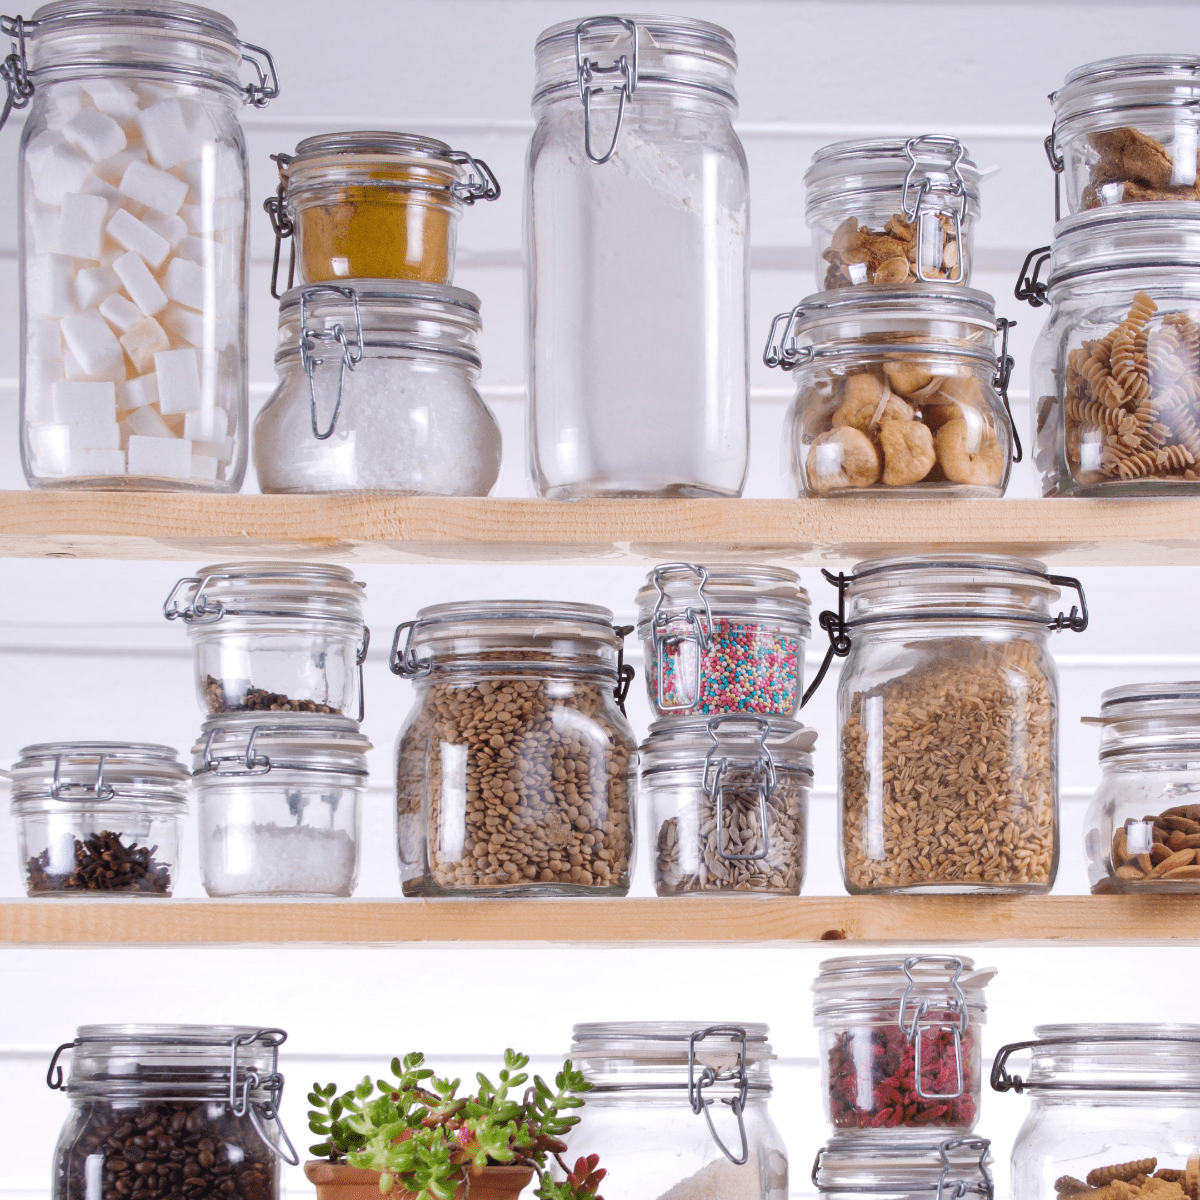 How To Maximize Storage In A Small Kitchen